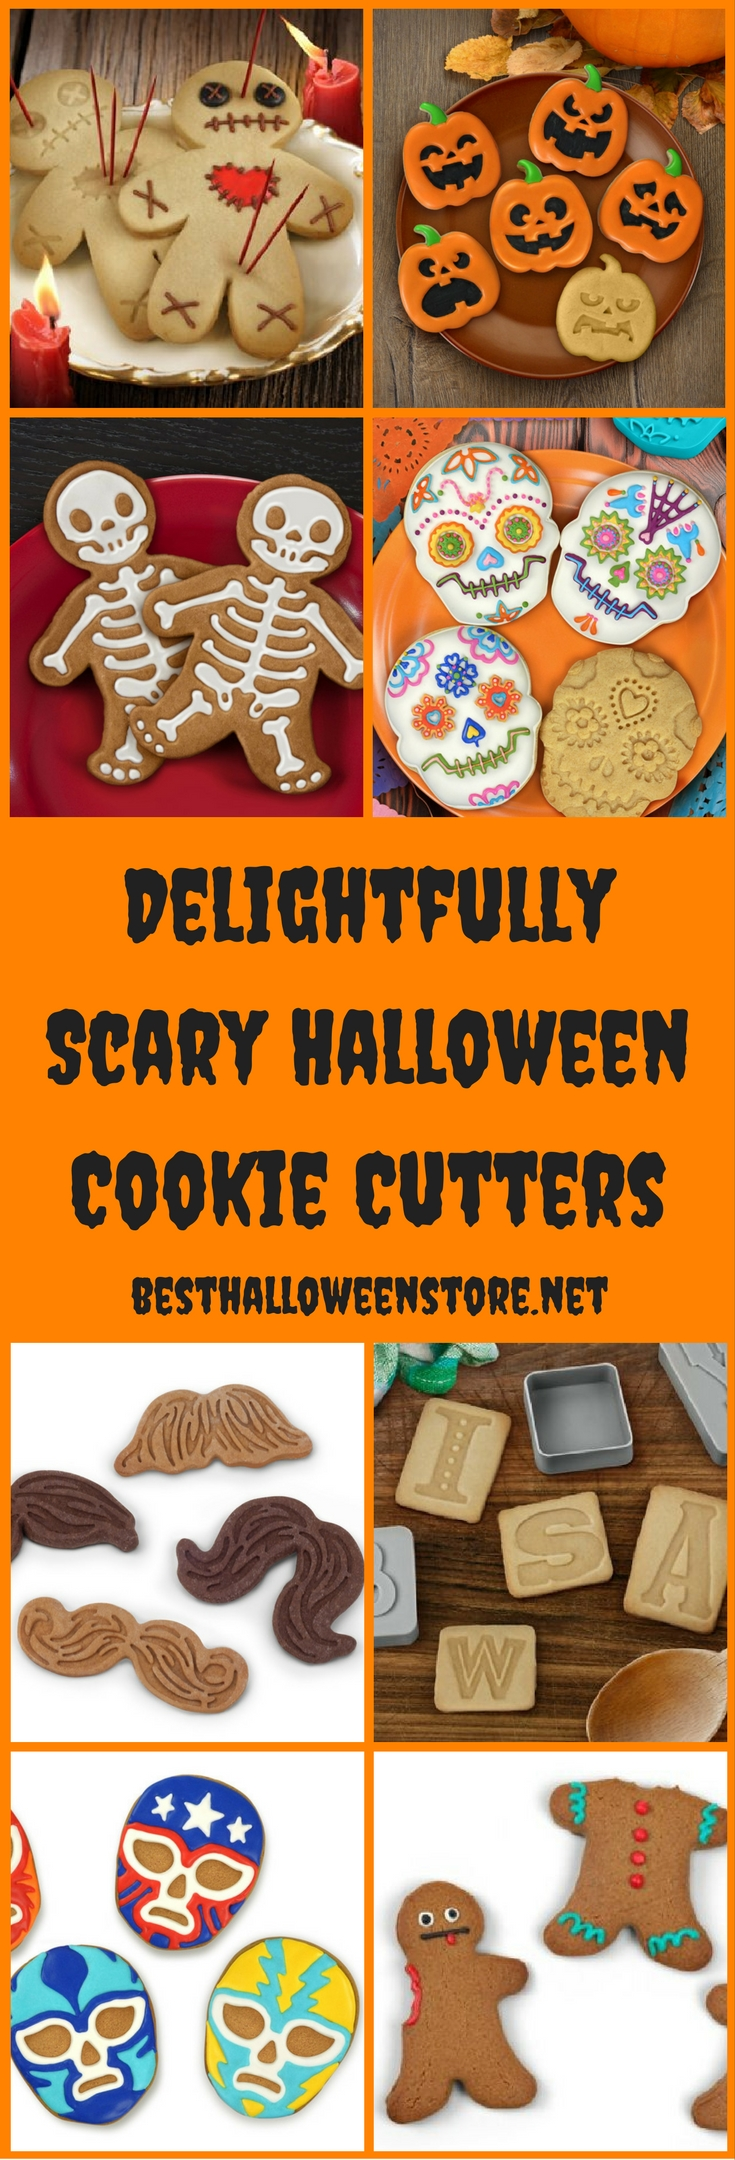 Delightfully Scary Halloween Cookie Cutters